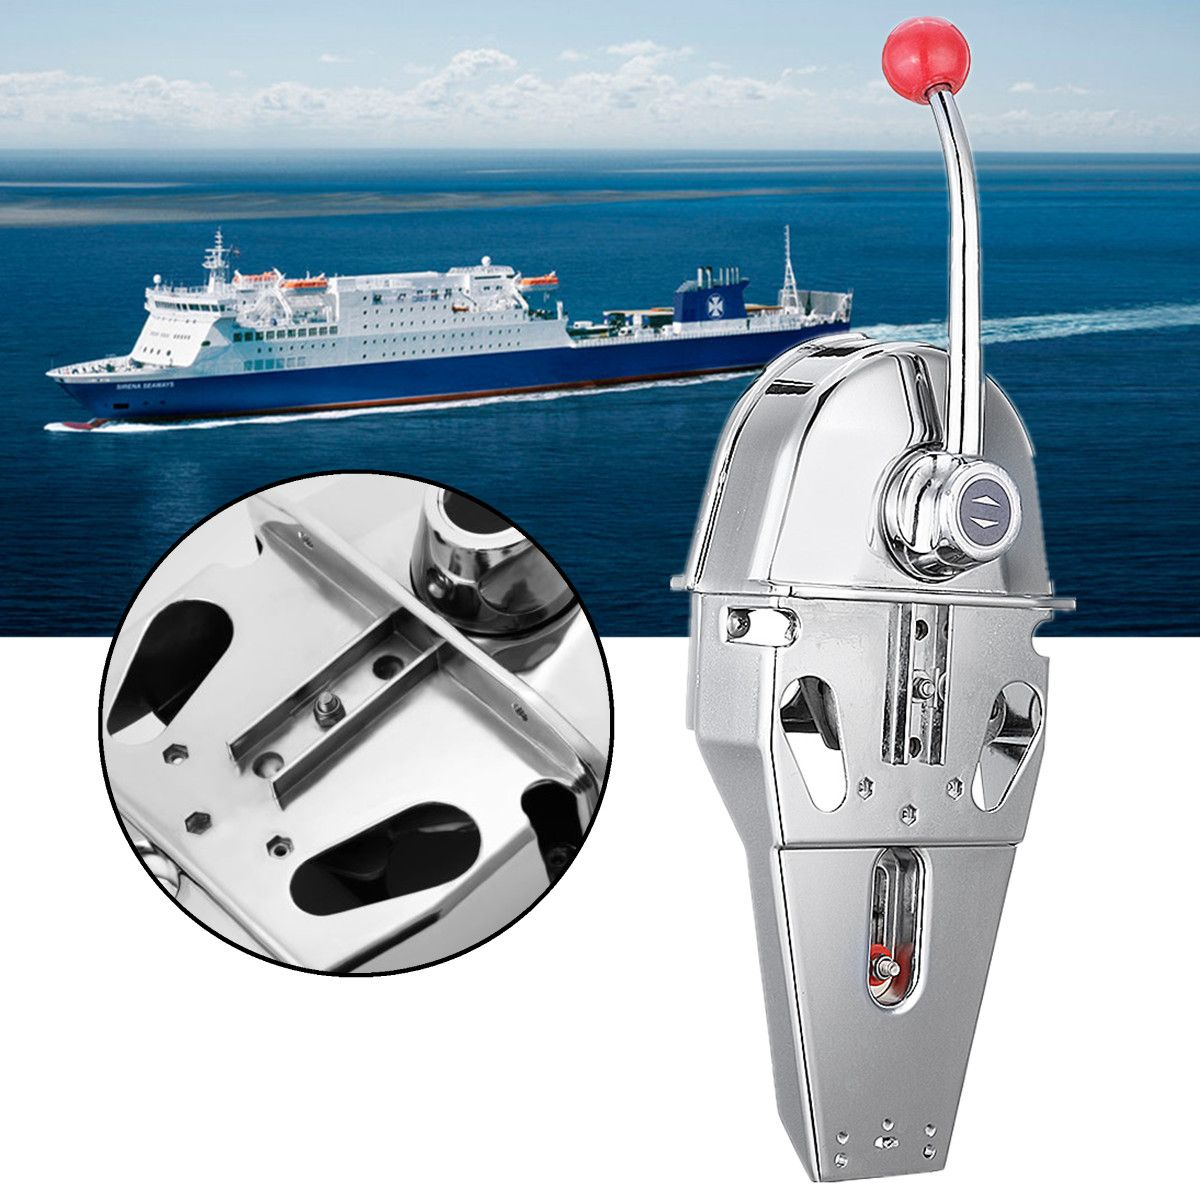 Top Mount Marine Boat Single Lever Handle Engine Control Box 316 Stainless Steel Dual Action Built-in Friction 45.5x15x12cm